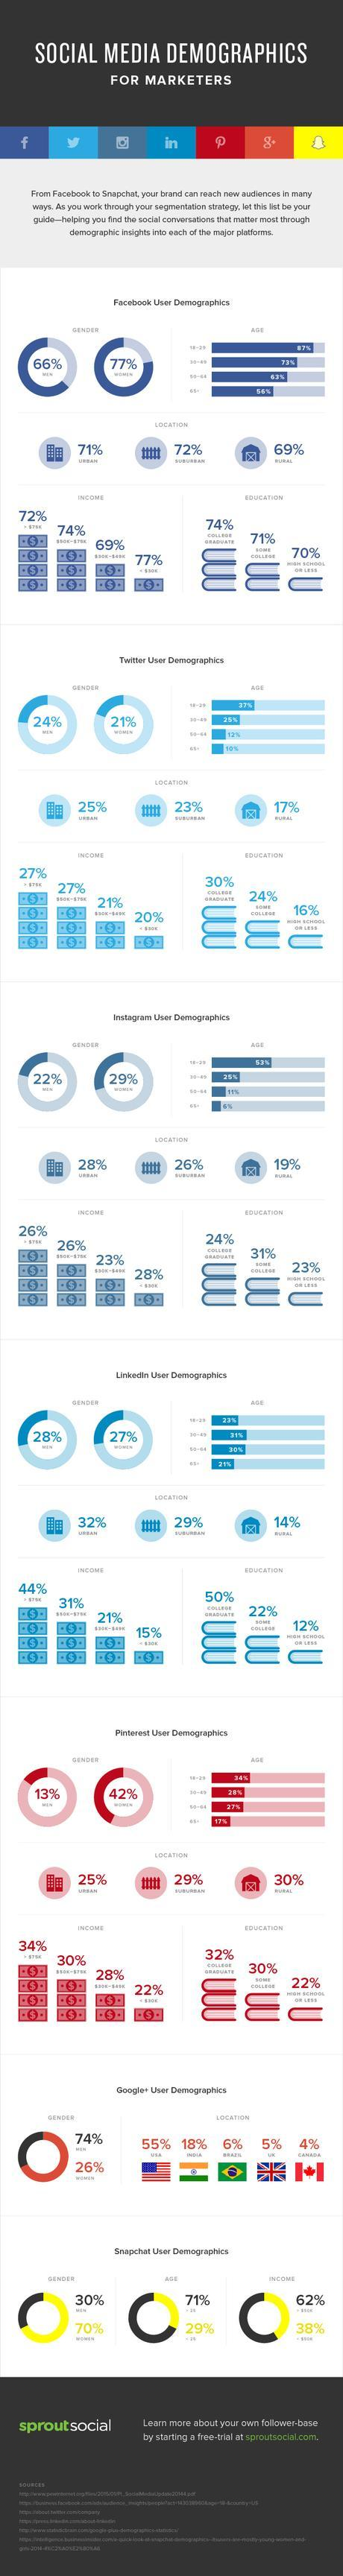 How To Know The Right Social Media Platform To Invest In [INFOGRAPHIC]